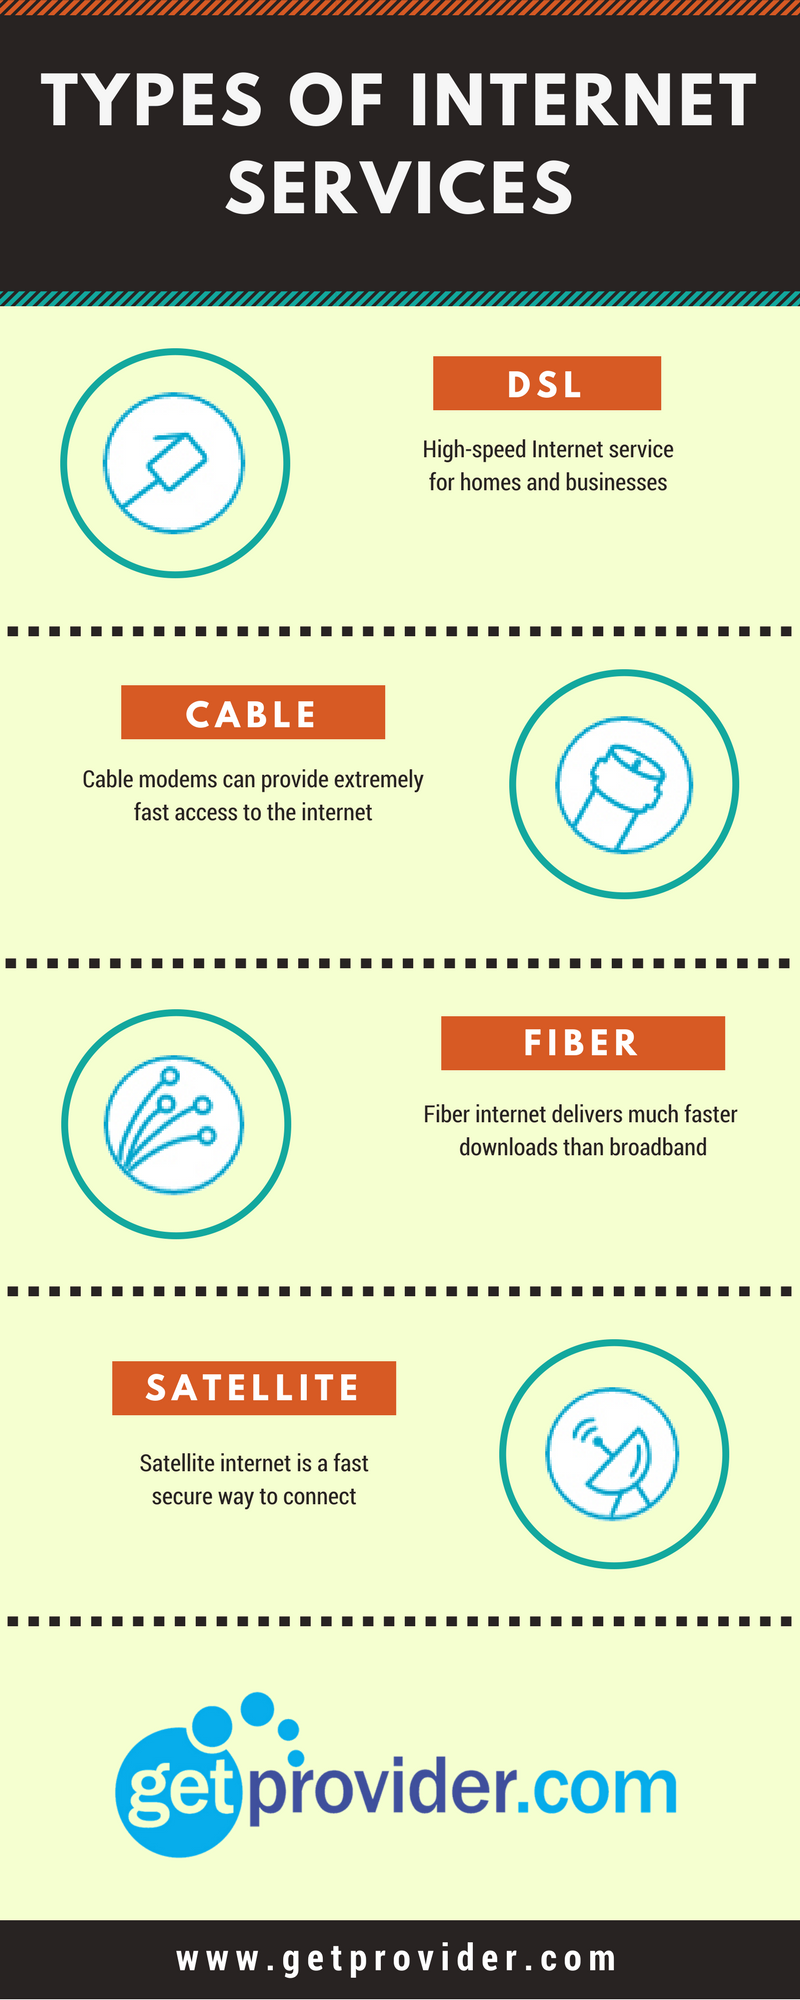 There are different types of internet services available to